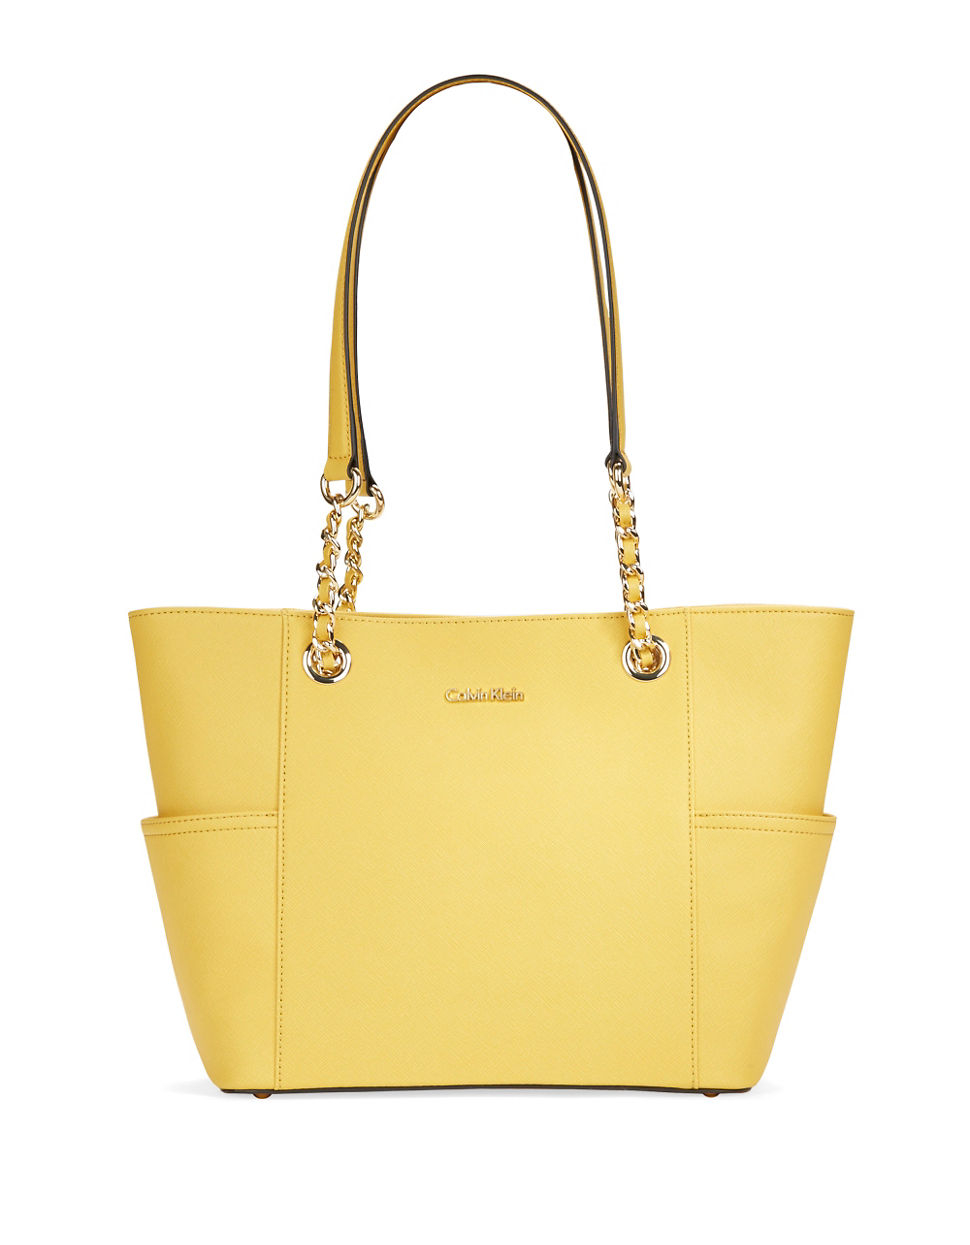 Calvin klein Saffiano Leather Tote in Yellow | Lyst